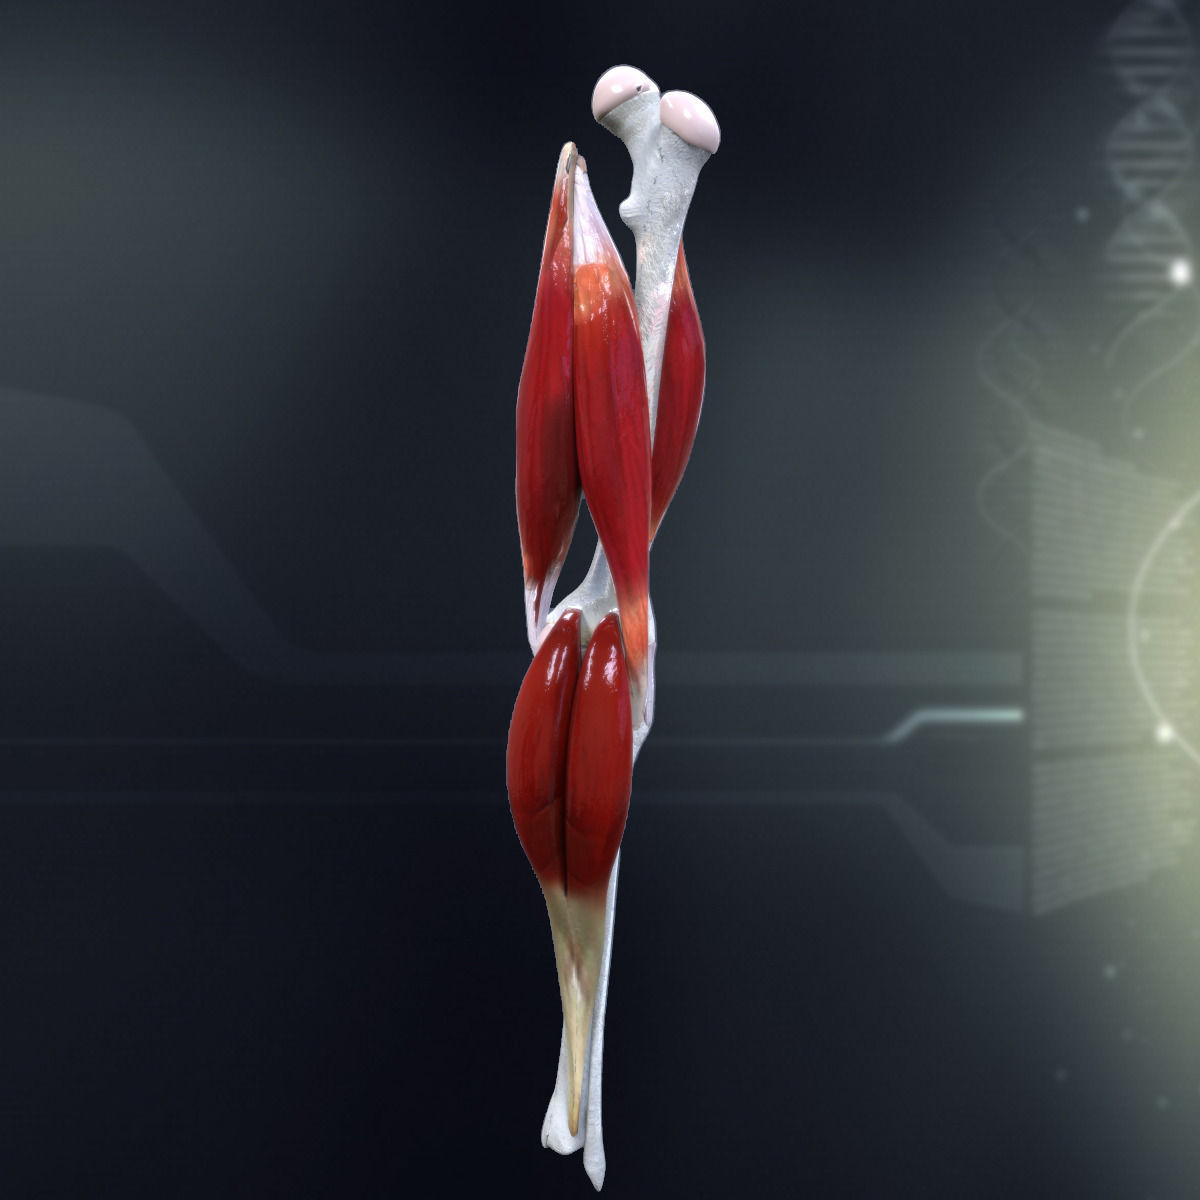 3d model human knee joint anatomy cgtrader human knee joint anatomy 3d model max obj 3ds fbx c4d lwo lw lws 2 ccuart Choice Image